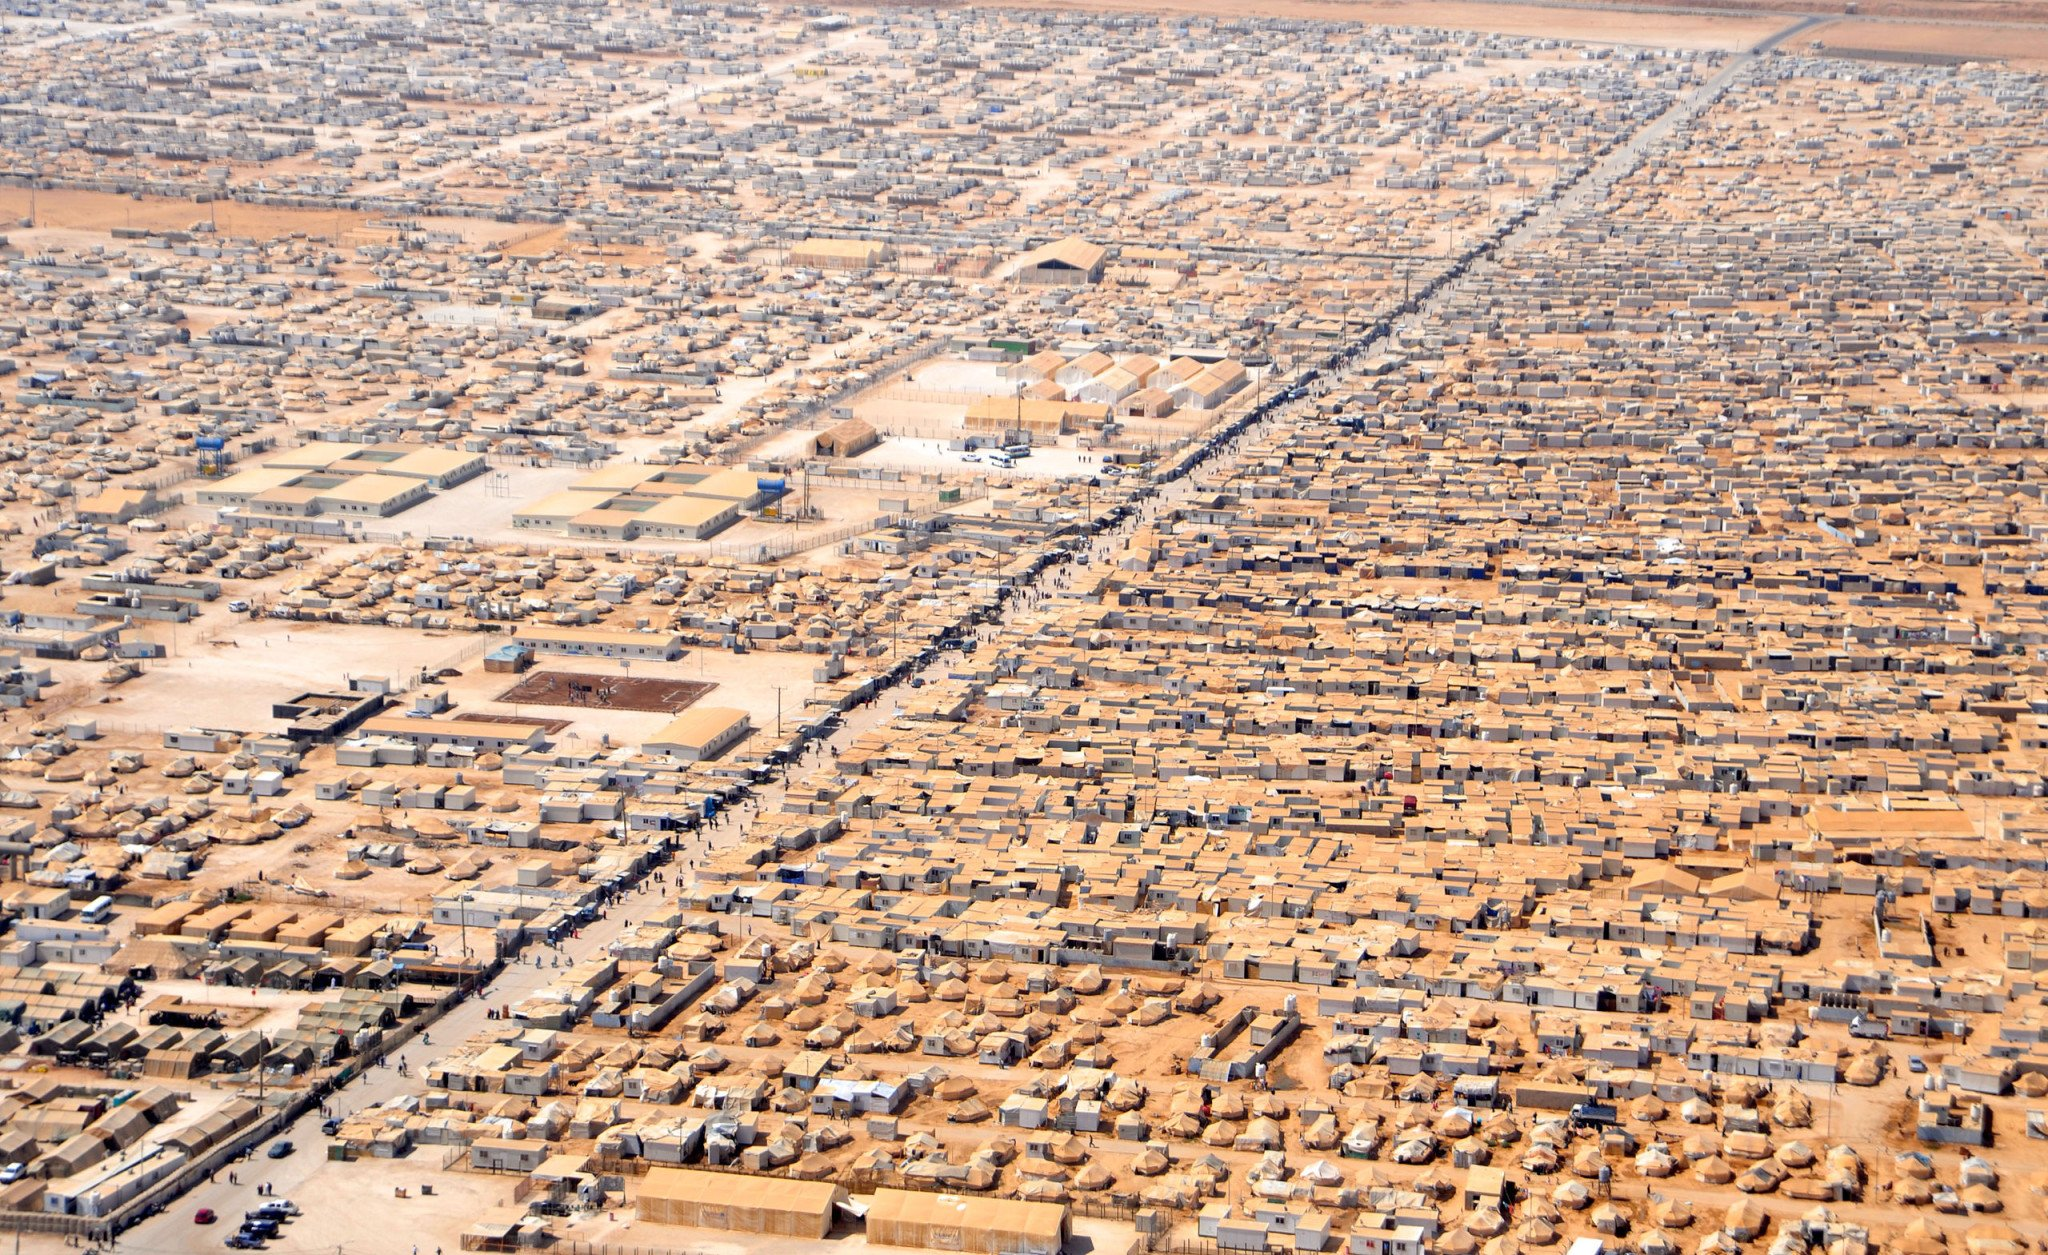 The UK response to the Syrian refugee crisis – Commons Library briefing